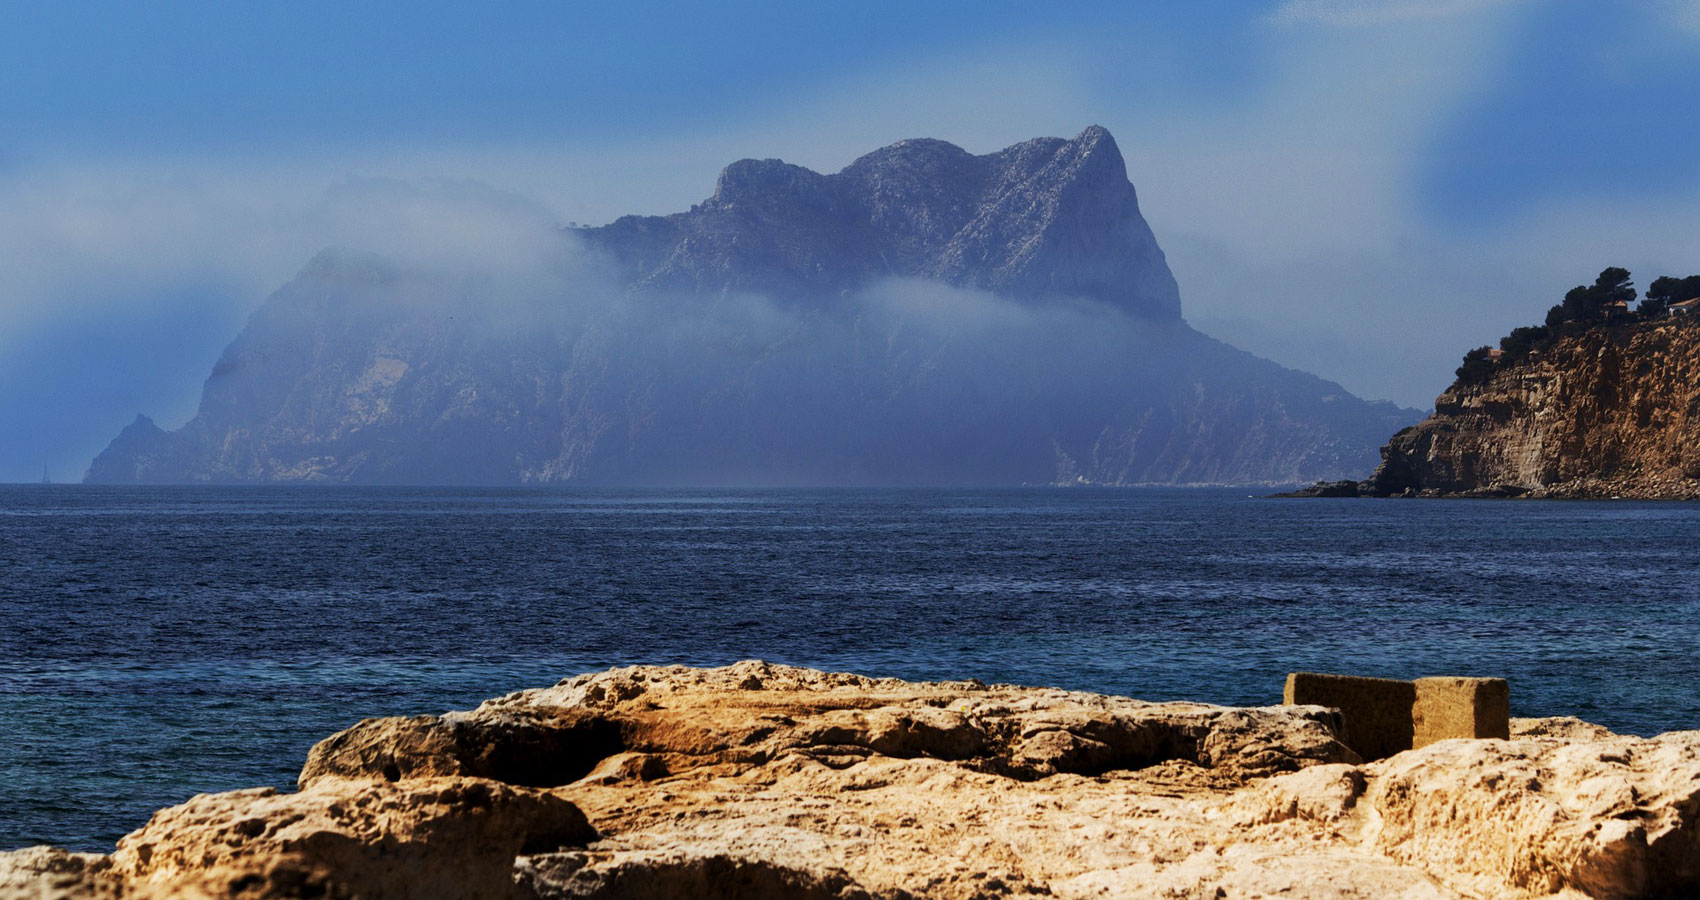 Moraira, a poem written by Steve Pearson at Spillwords.com